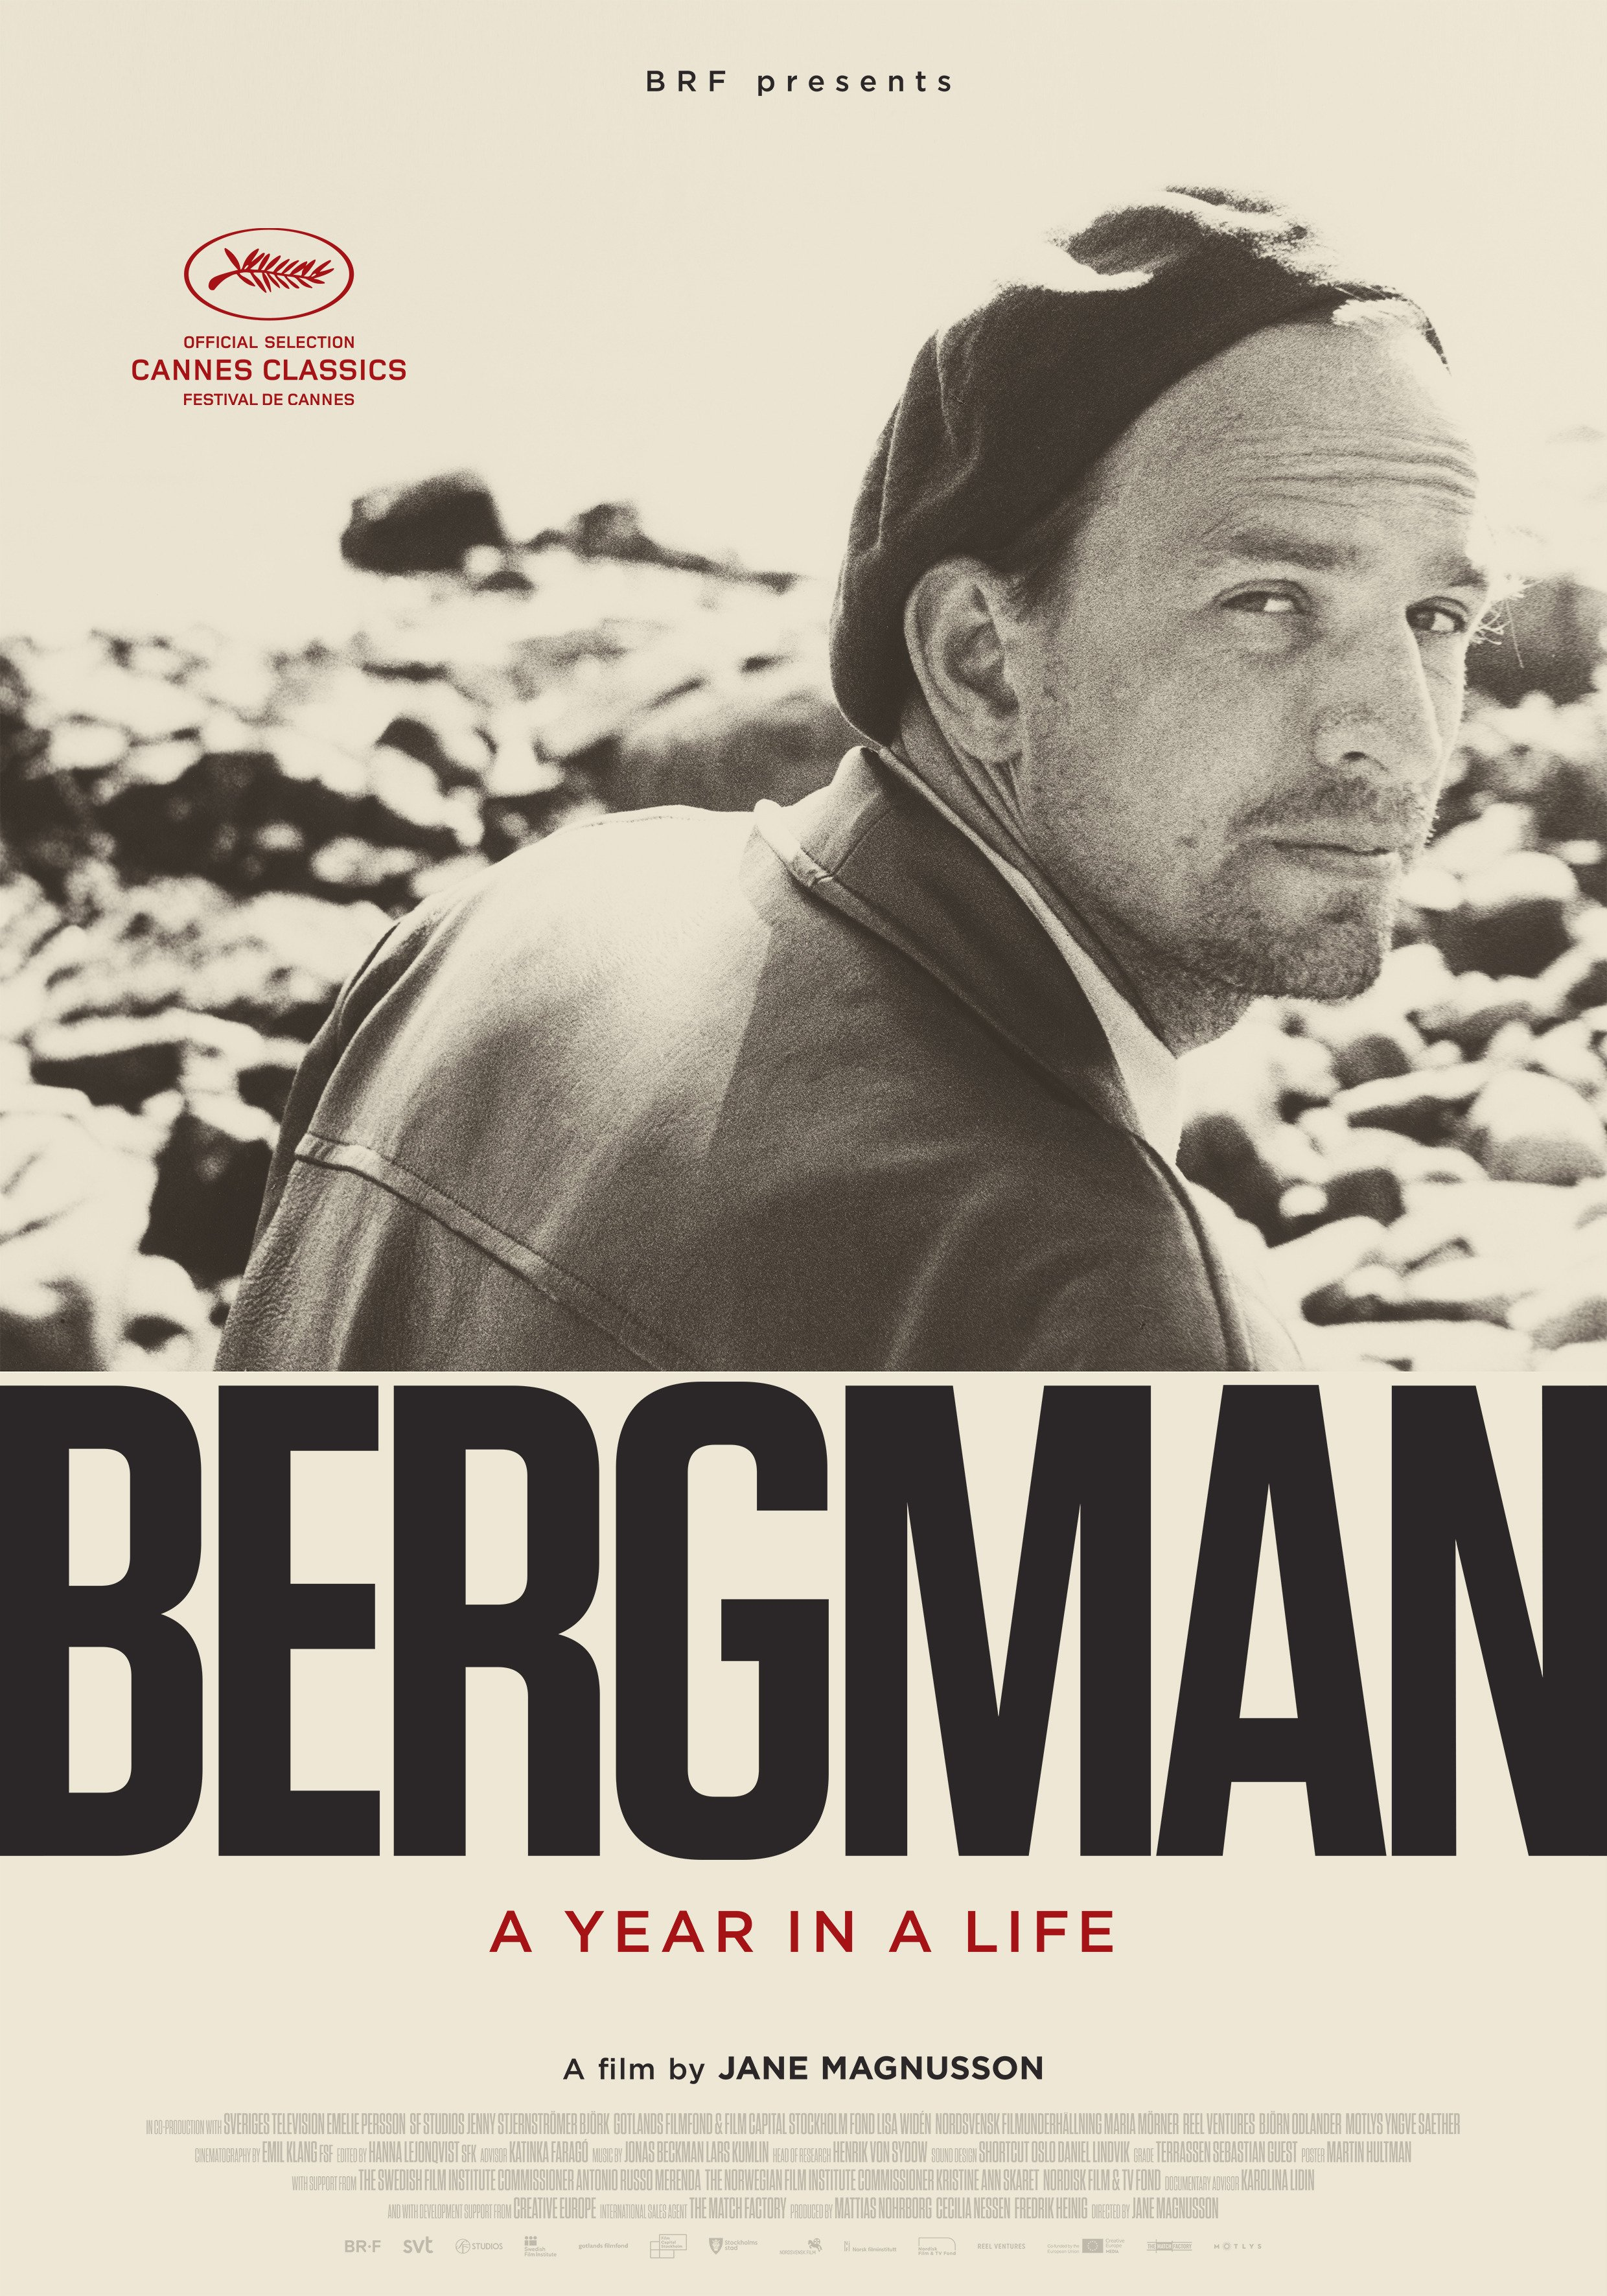 「bergman a year in a life poster」的圖片搜尋結果